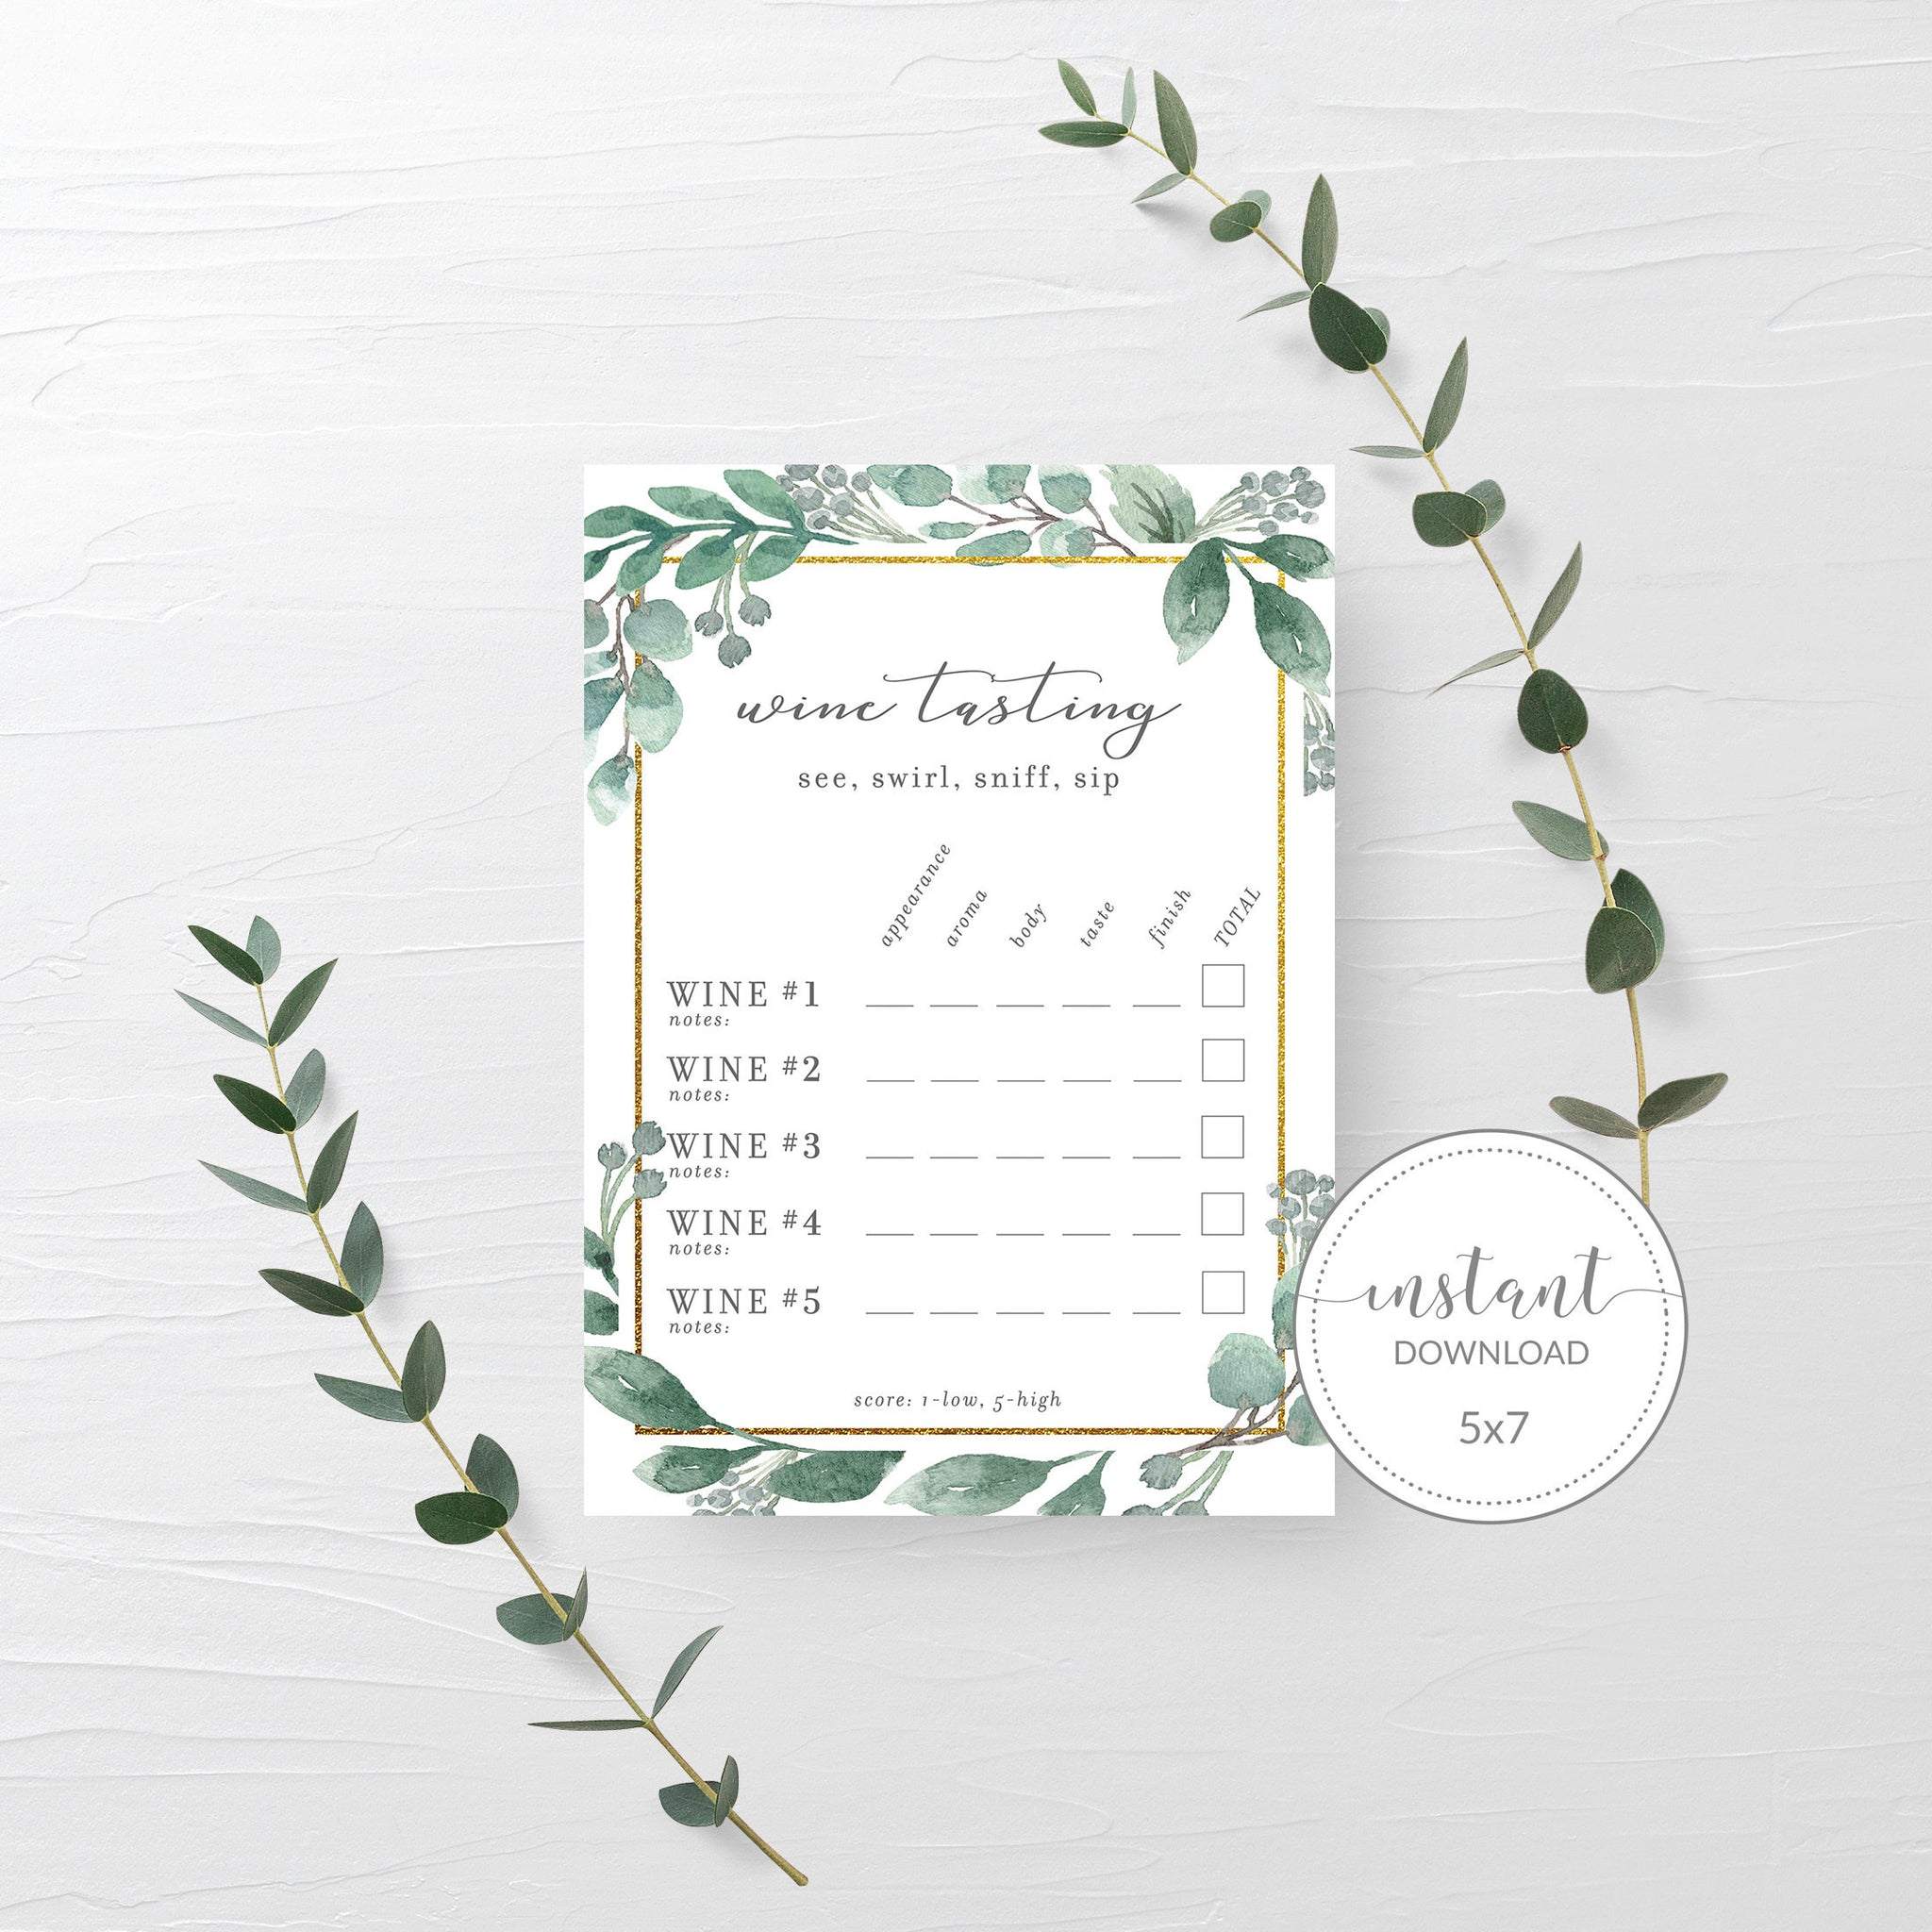 Wine Tasting Card, Wine Theme Bridal Shower, Wine Bachelorette Party Supplies, Geometric Greenery Printables, INSTANT DOWNLOAD - GFG100 - @PlumPolkaDot